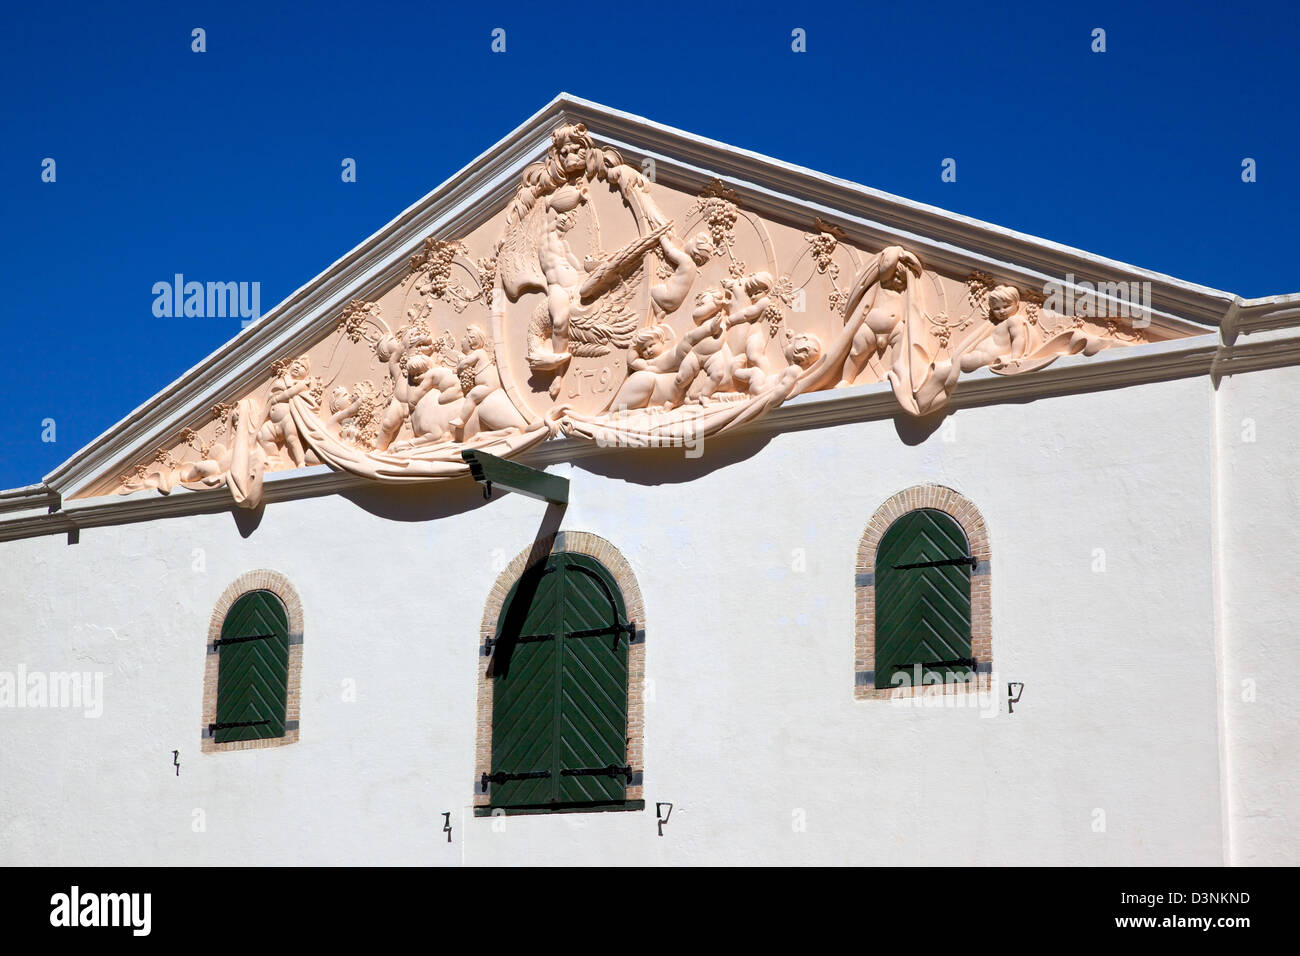 The wine cellar pediment at Groot Constantia, the finest surviving example of Cape Dutch architecture in South Africa. - Stock Image